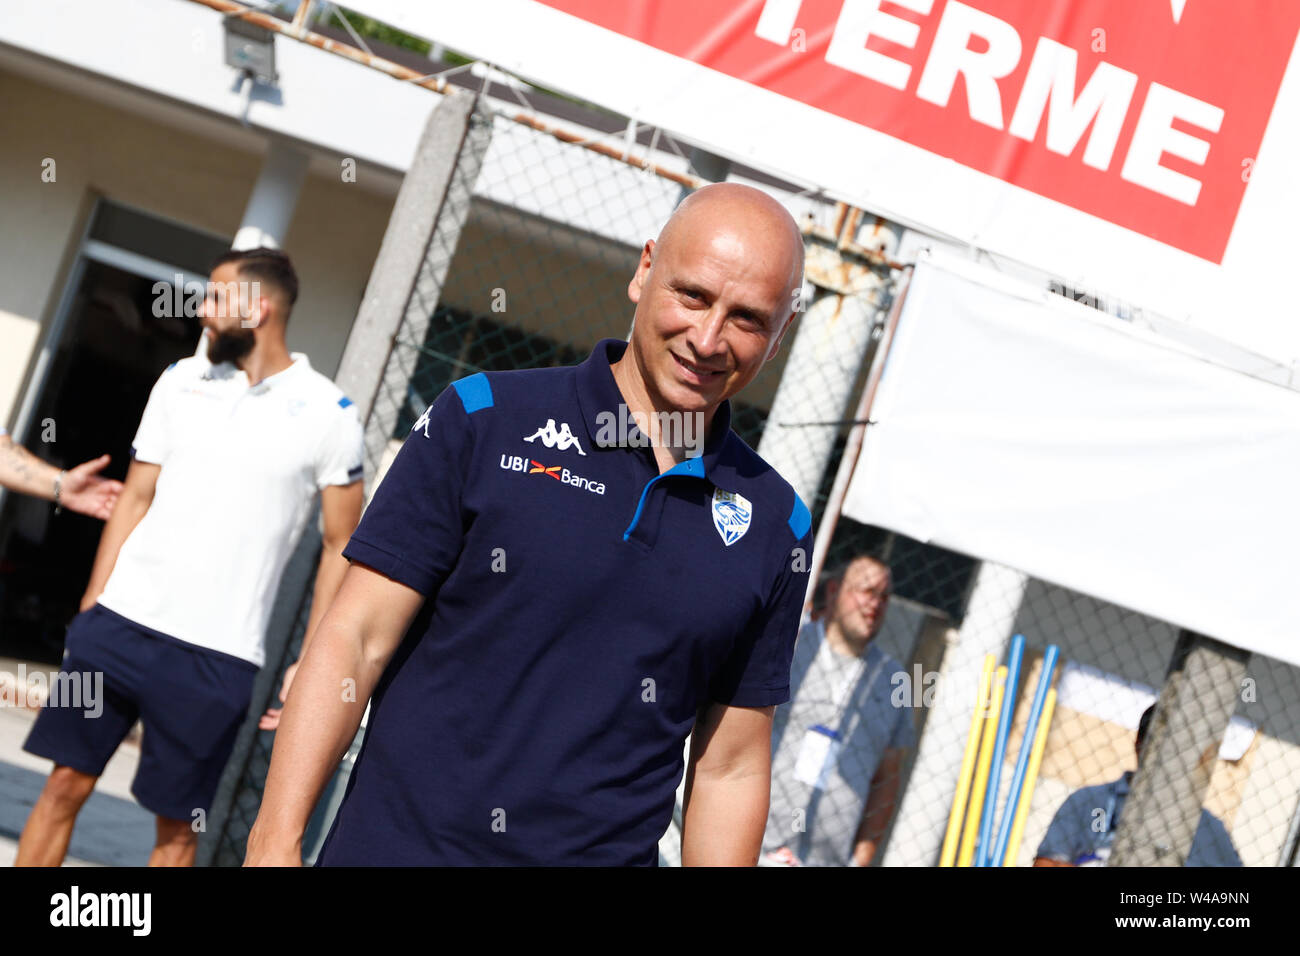 Darfo Boario, Italia. 21st July, 2019. Foto Stefano Nicoli/LaPresse21 luglio 2019 Darfo Boario (Bs), Italia sport calcio Amichevole Brescia Darfo Pre Campionato di calcio Serie A 2019/2020 - Nella foto: Eugenio Corini Photo Stefano Nicoli/LaPresse July 20, 2019 Darfo Boario (Bs), Italy sport soccer Friendly match Brescia Darfo League A TIM 2019/2020 - In the pic:Eugenio Corini Credit: LaPresse/Alamy Live News - Stock Image